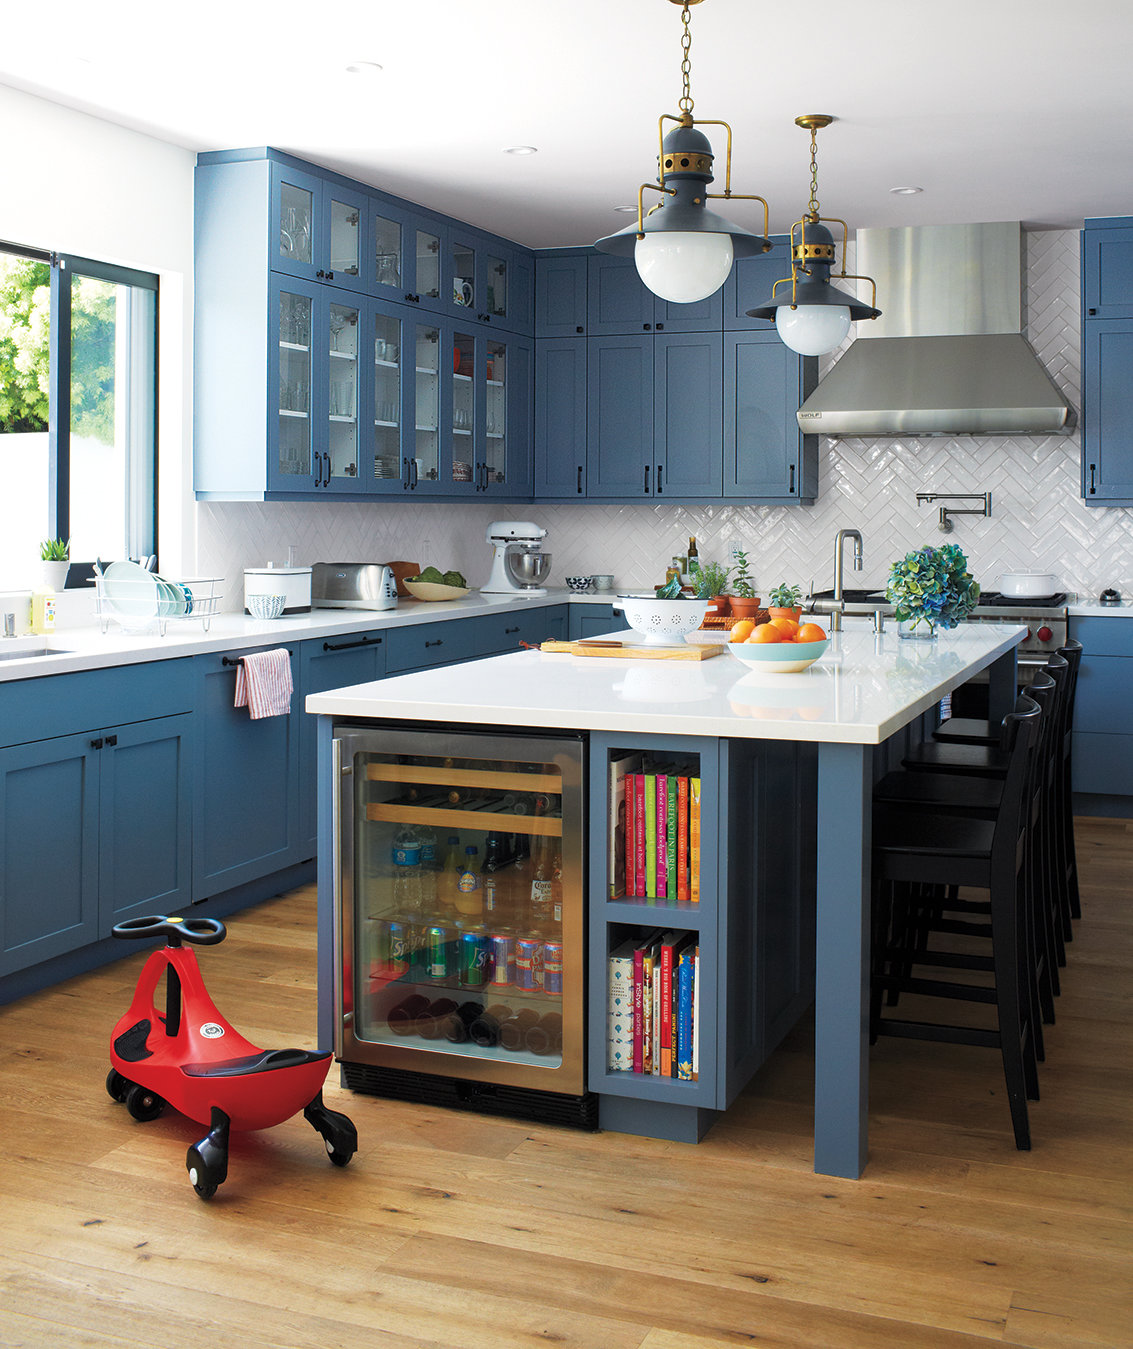 10 Perfect Paint Colors For A Kitchen